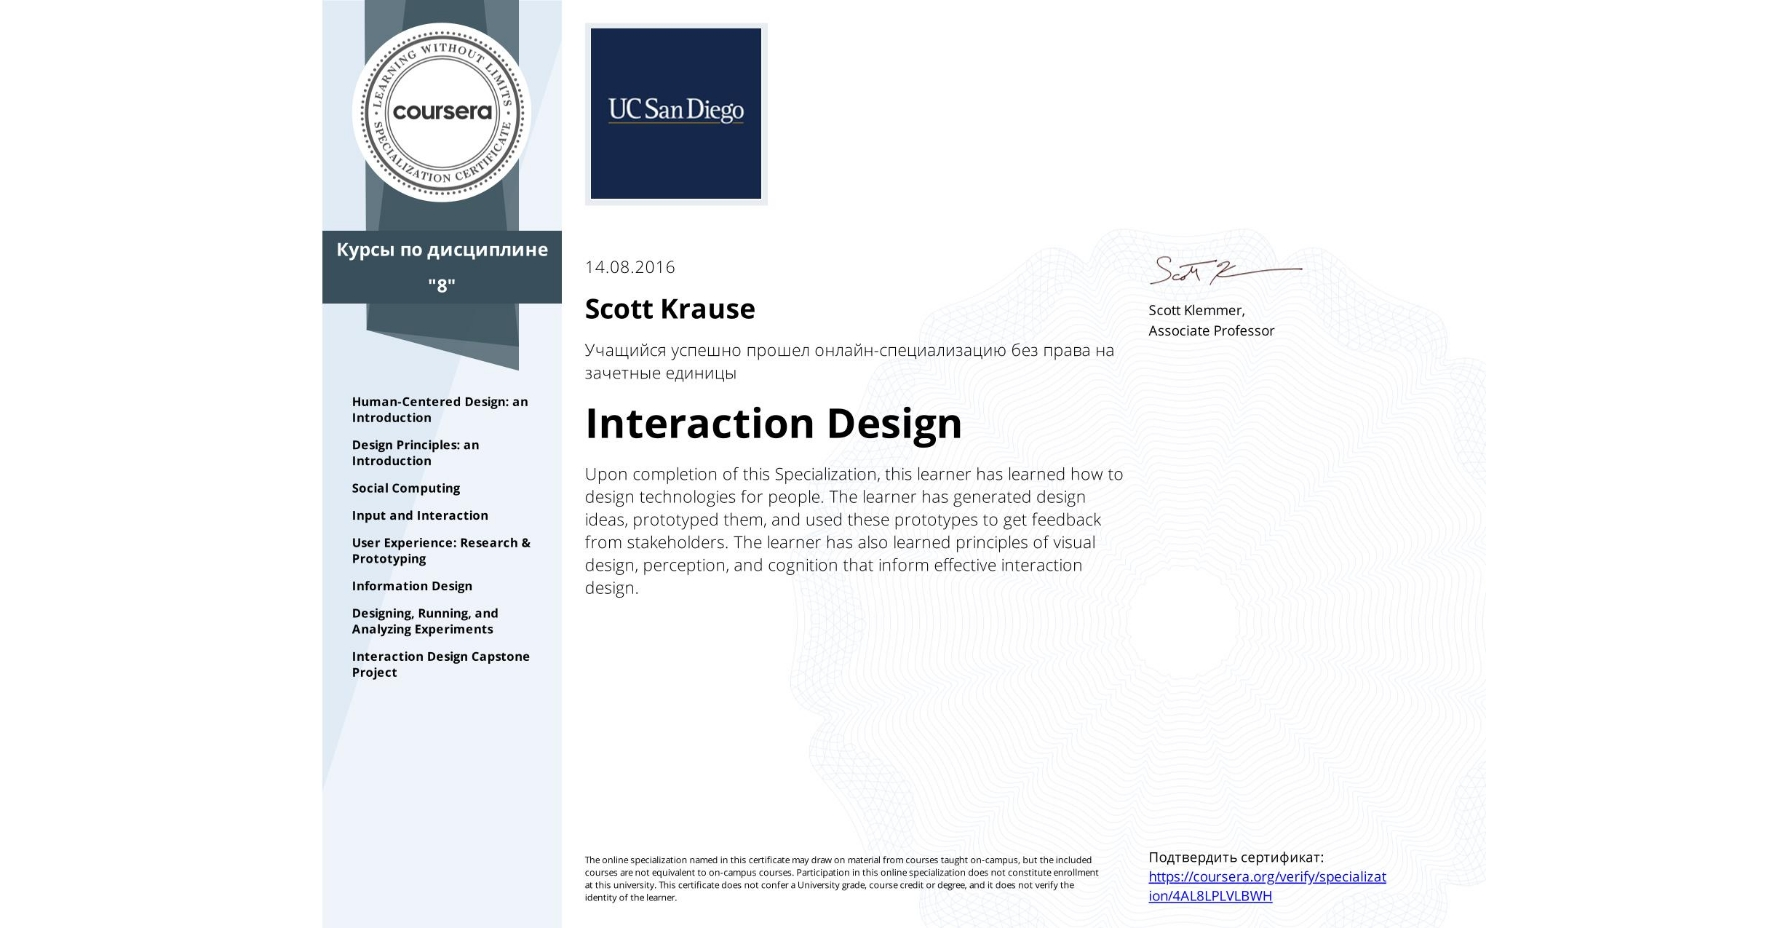 View certificate for Scott Krause, Interaction Design, offered through Coursera. Upon completion of this Specialization, this learner has learned how to design technologies for people. The learner has generated design ideas, prototyped them, and used these prototypes to get feedback from stakeholders. The learner has also learned principles of visual design, perception, and cognition that inform effective interaction design.